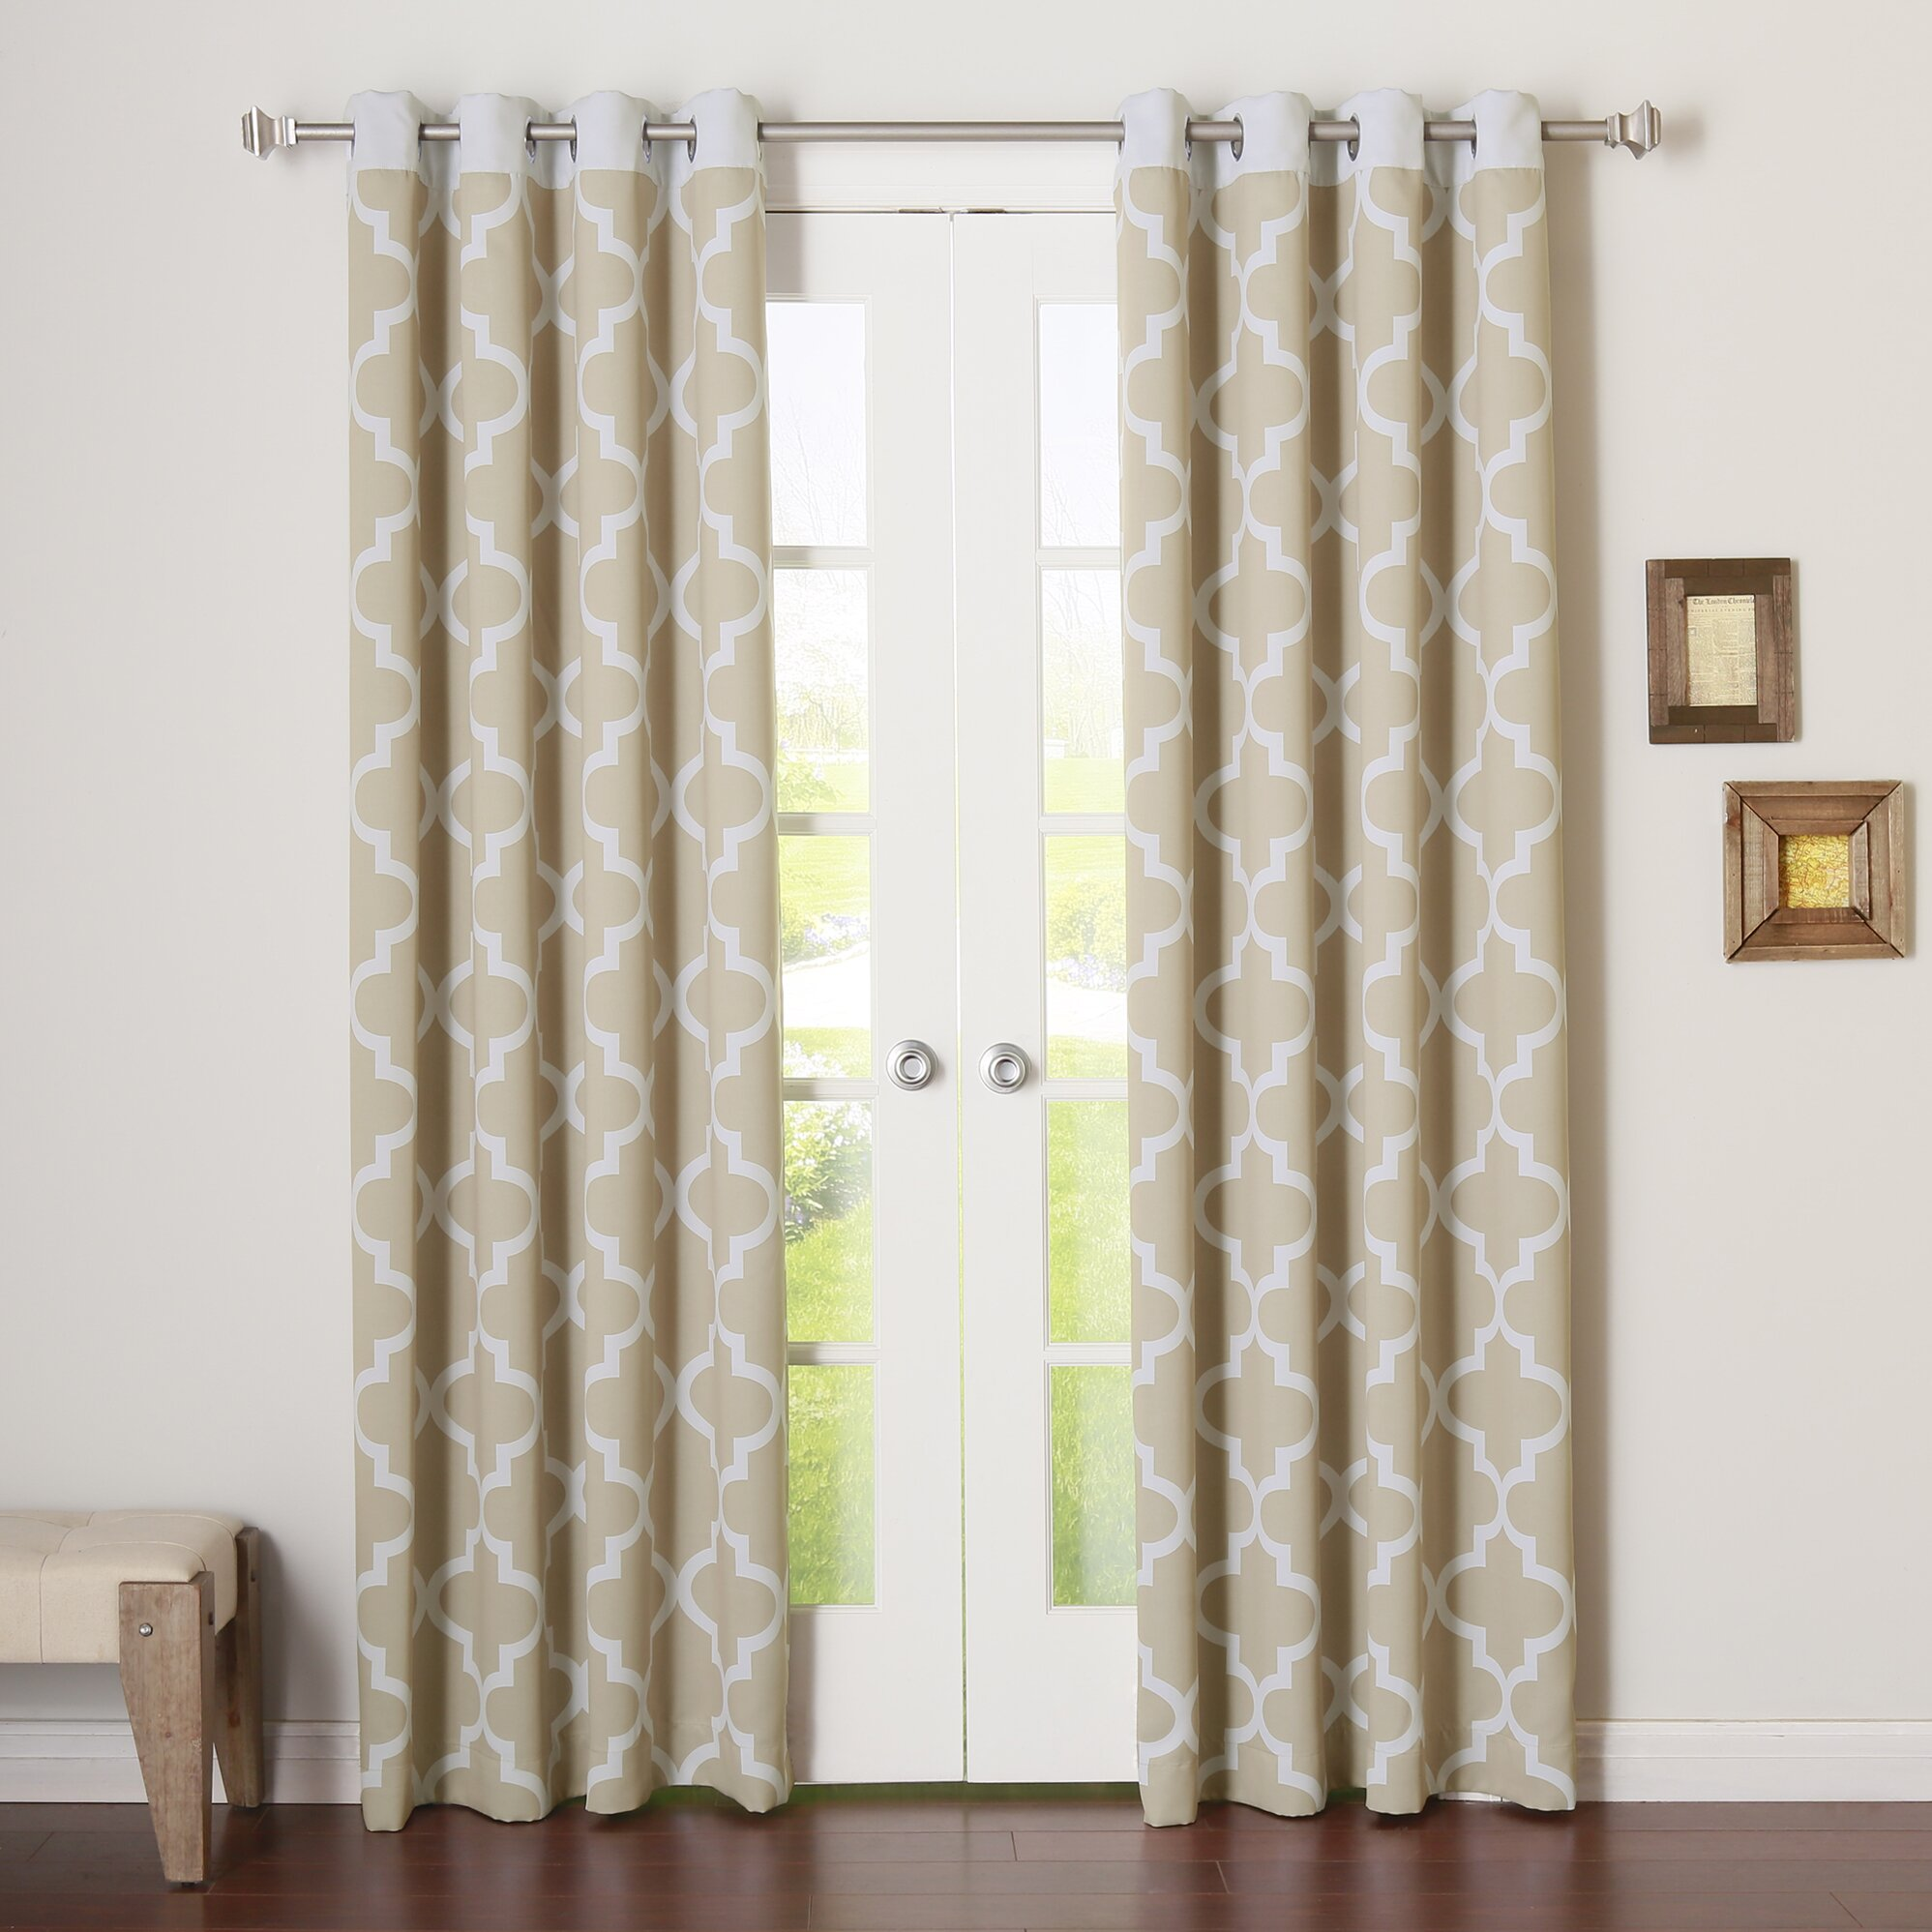 Best Home Fashion, Inc. Indoor Blackout Curtain Panels